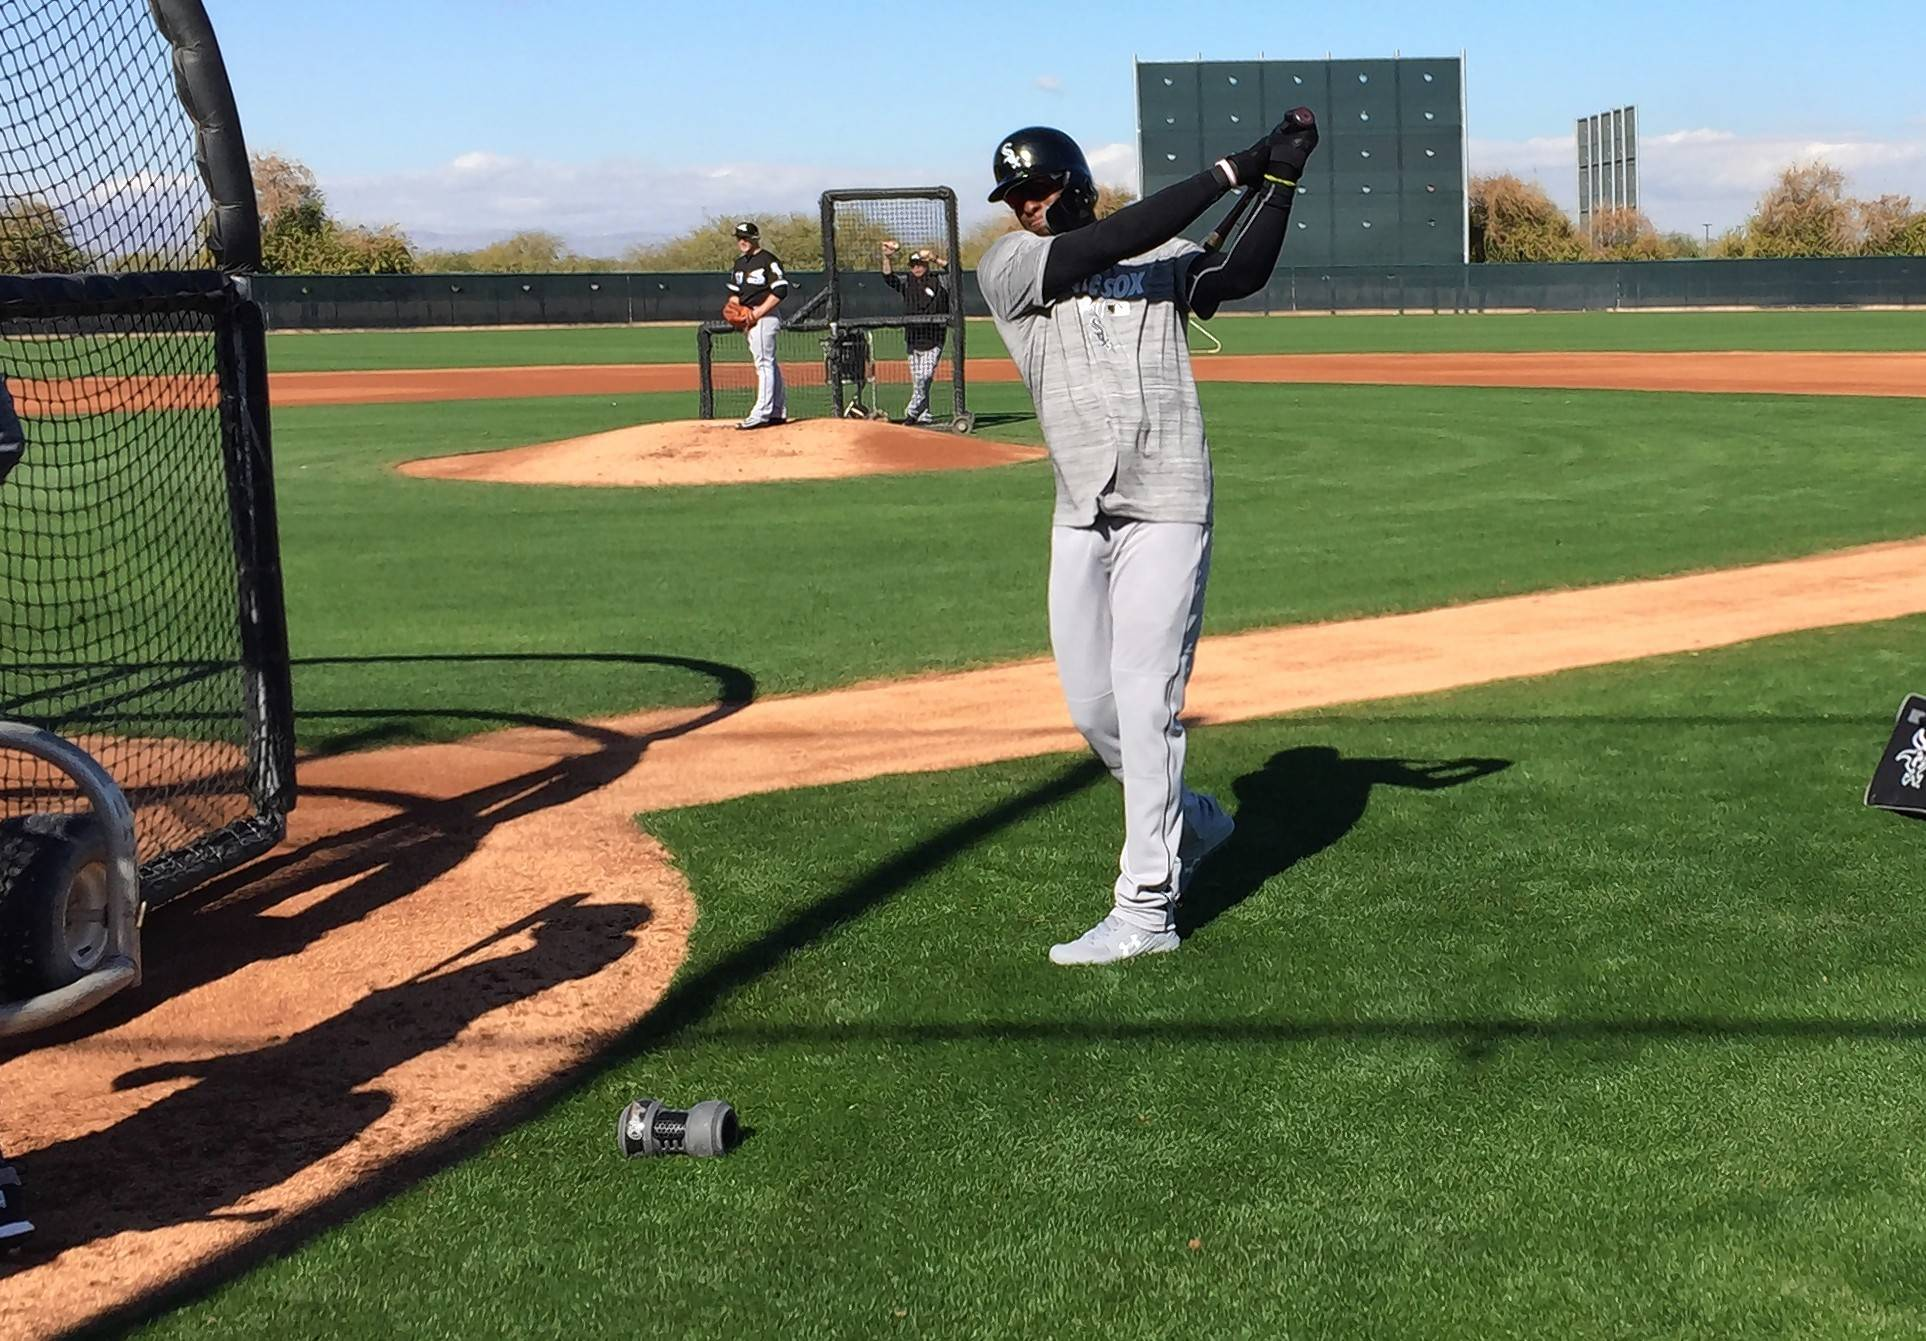 White Sox prospect Luis Robert will report to advanced Class A Winston-Salem when the season begins, but will likely reach Birmingam before long and could see the majors by 2020 if he stays healthy.